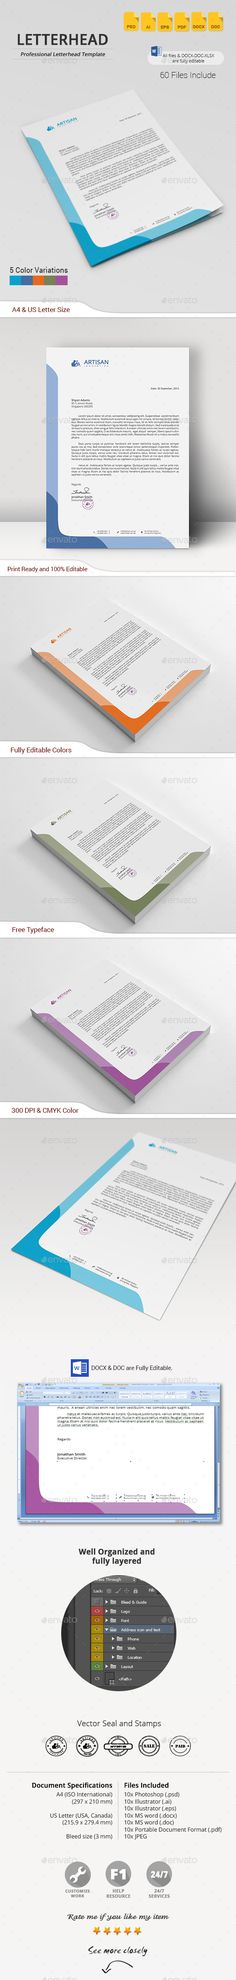 Buy Letterhead by artisanHR on GraphicRiver. Letterhead A simple unique letterhead for all kind of business and personal purpose usages. This file is easy to edi. Letterhead Printing, Letterhead Business, Stationery Printing, Letterhead Design, Letterhead Template, Stationery Items, Stationery Design, Print Templates, Design Templates